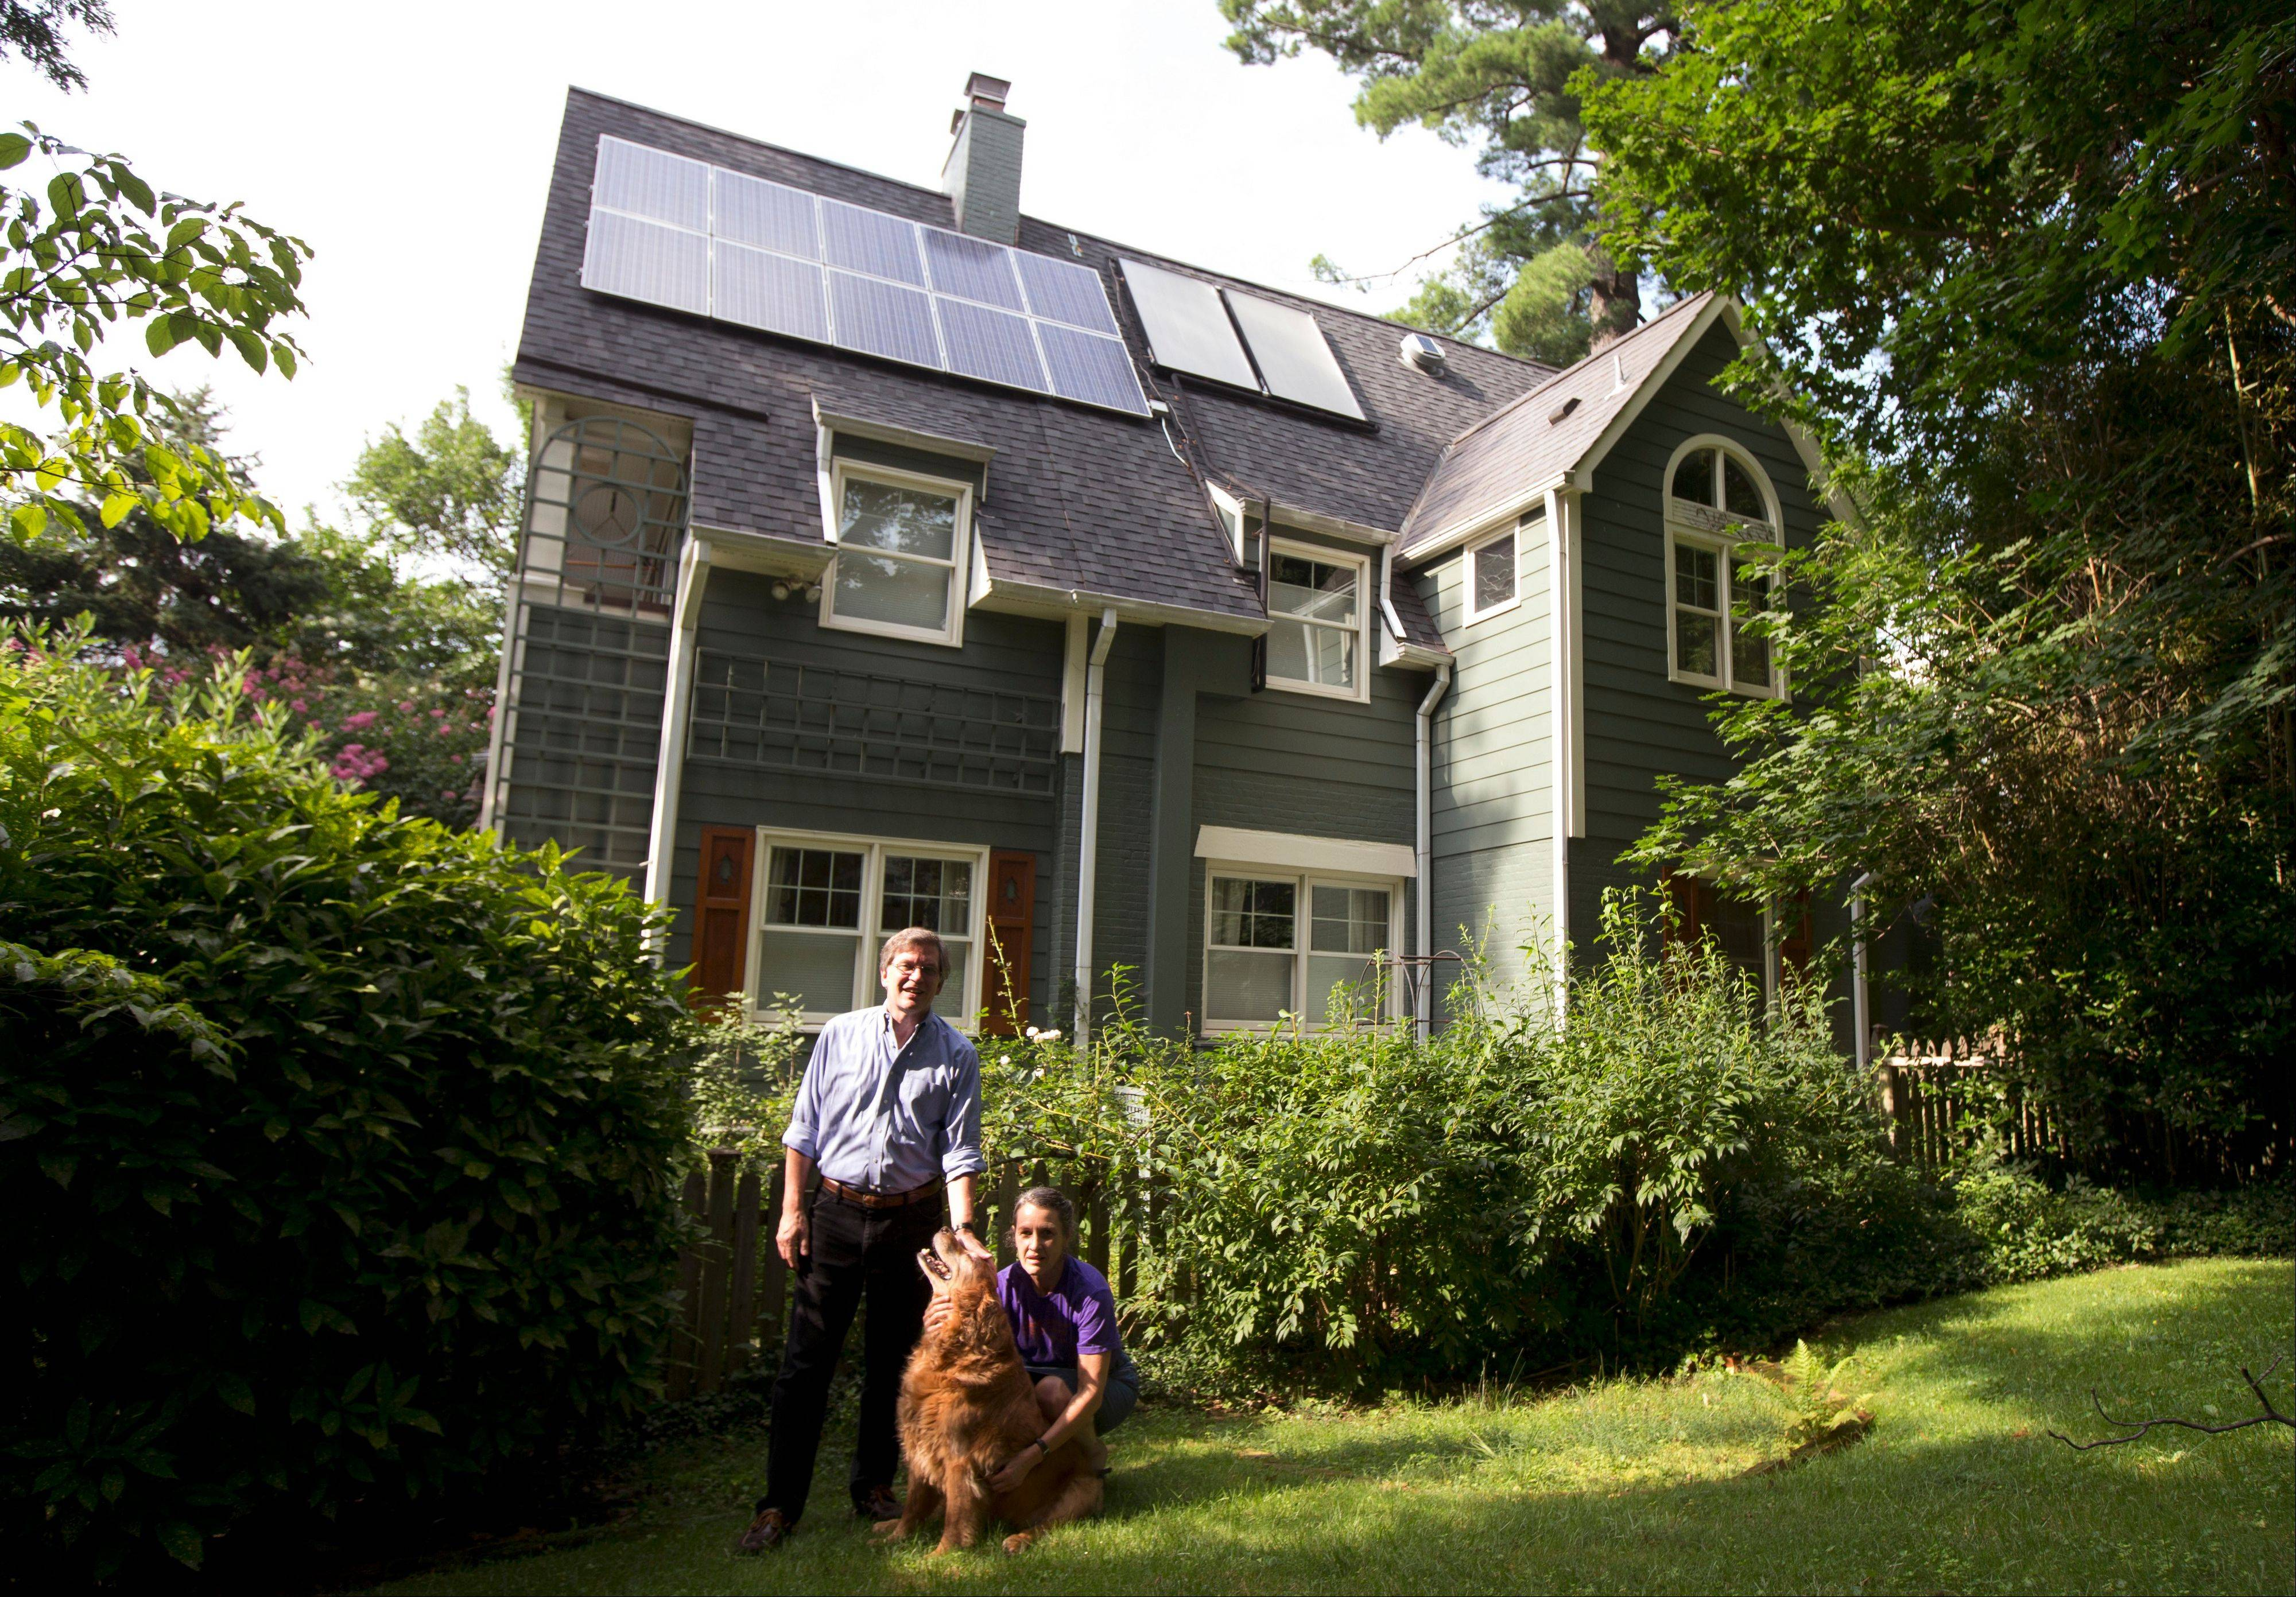 Ketch Ryan, right, and her neighbor, Kirk Renaud, pose next her house with solar panels on the roof in Chevy Chase, Md. They are part of a solar cooperative, Common Cents Solar.